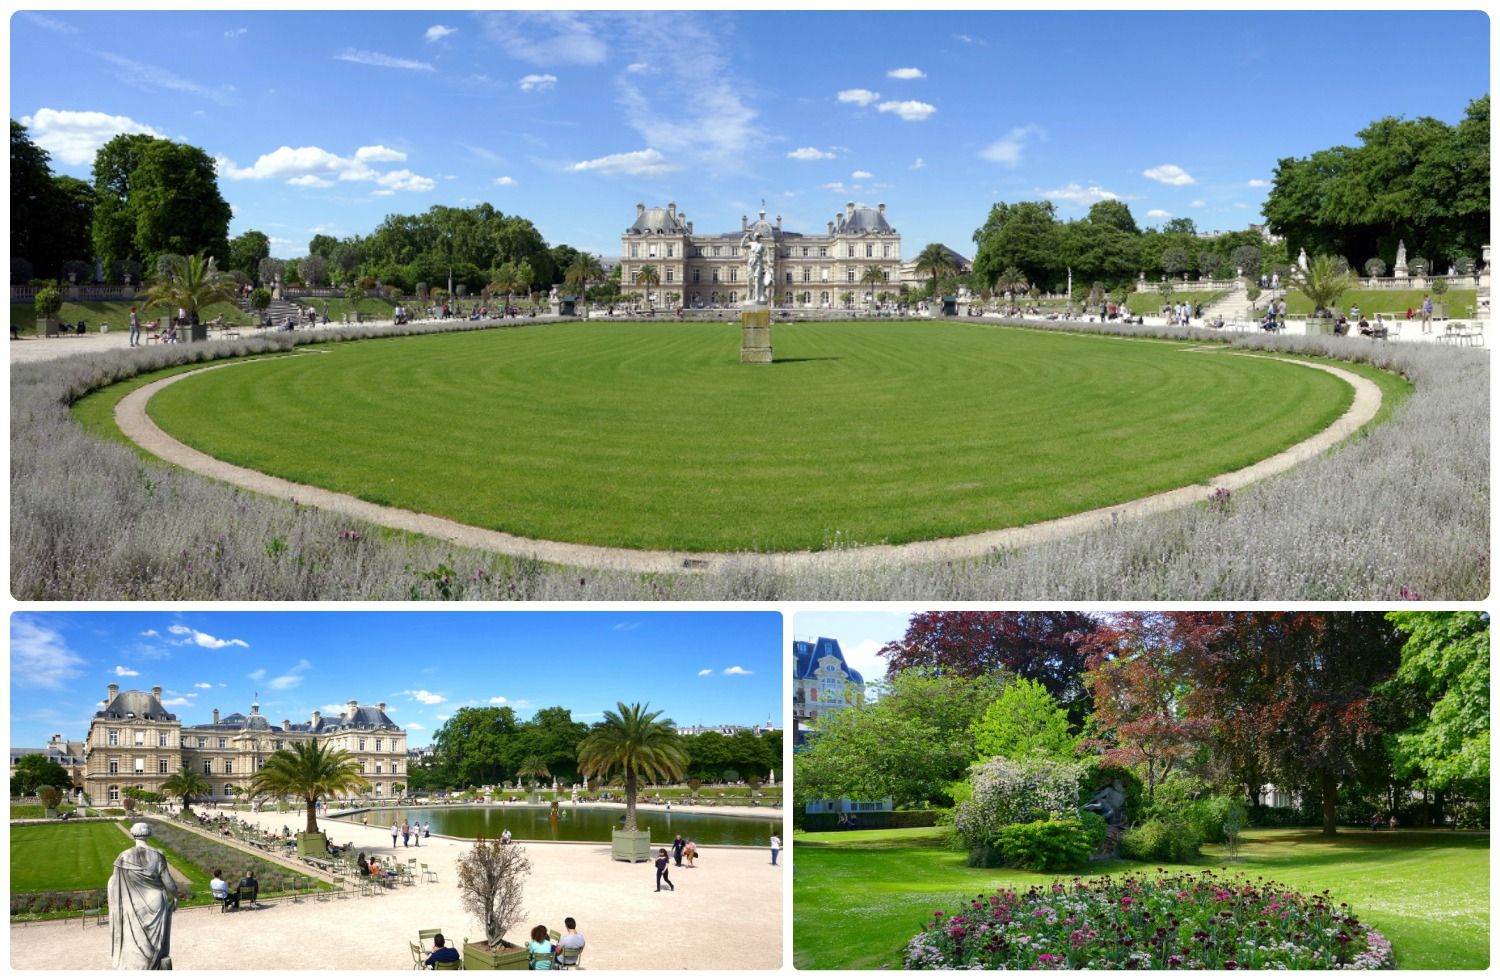 Clockwise (from the top): A panorama of the garden looking towards the palace, a sculpture in the garden is part of the greenery, the pond in the garden with the Luxembourg Palace in the background.